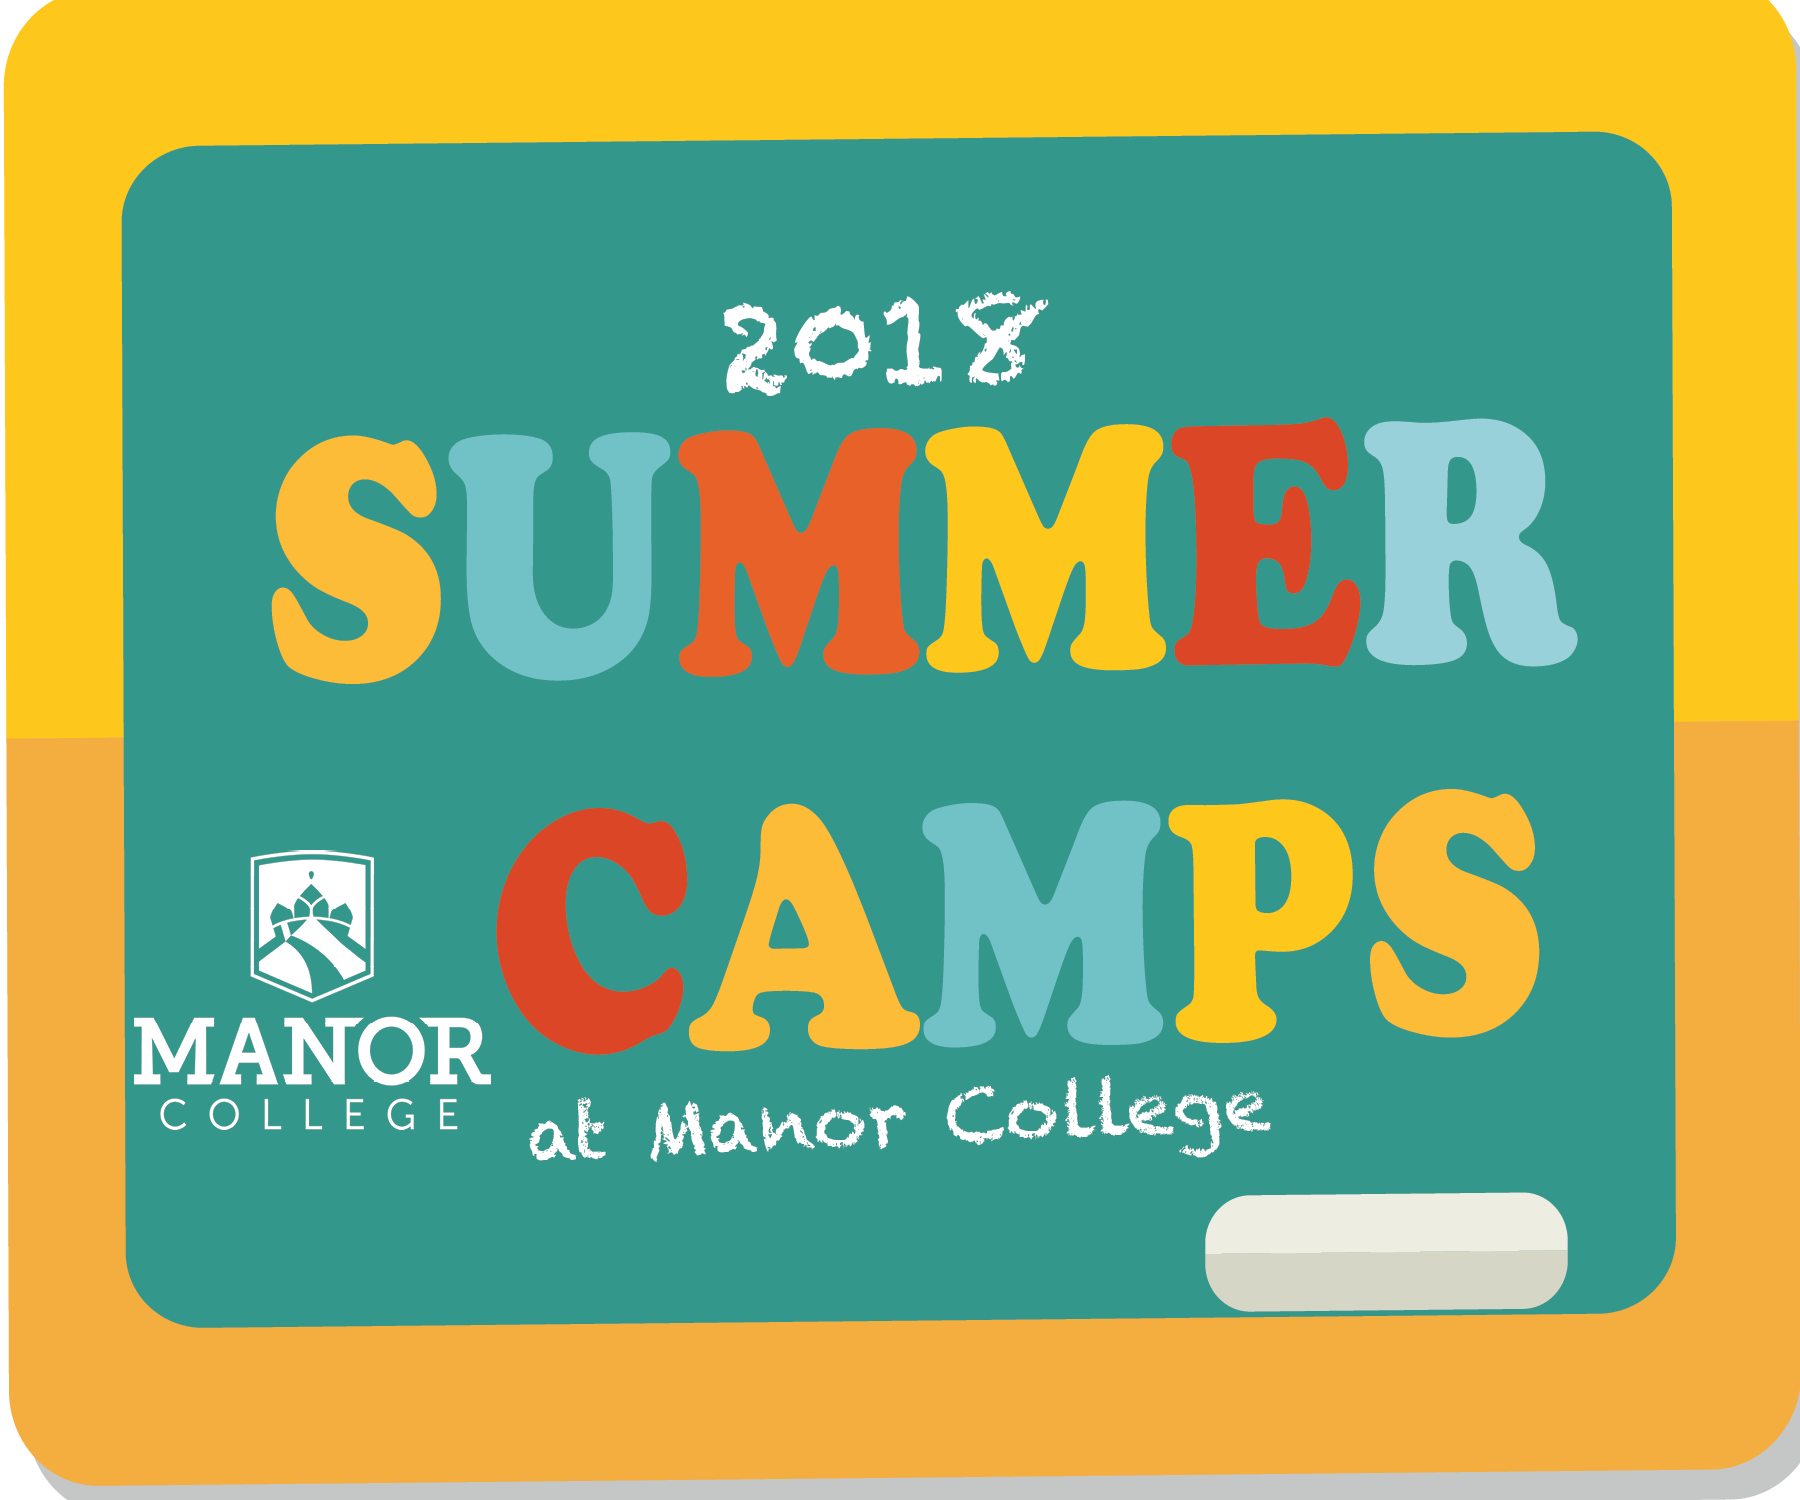 Manor College is offering a variety of summer camps for children and teens!